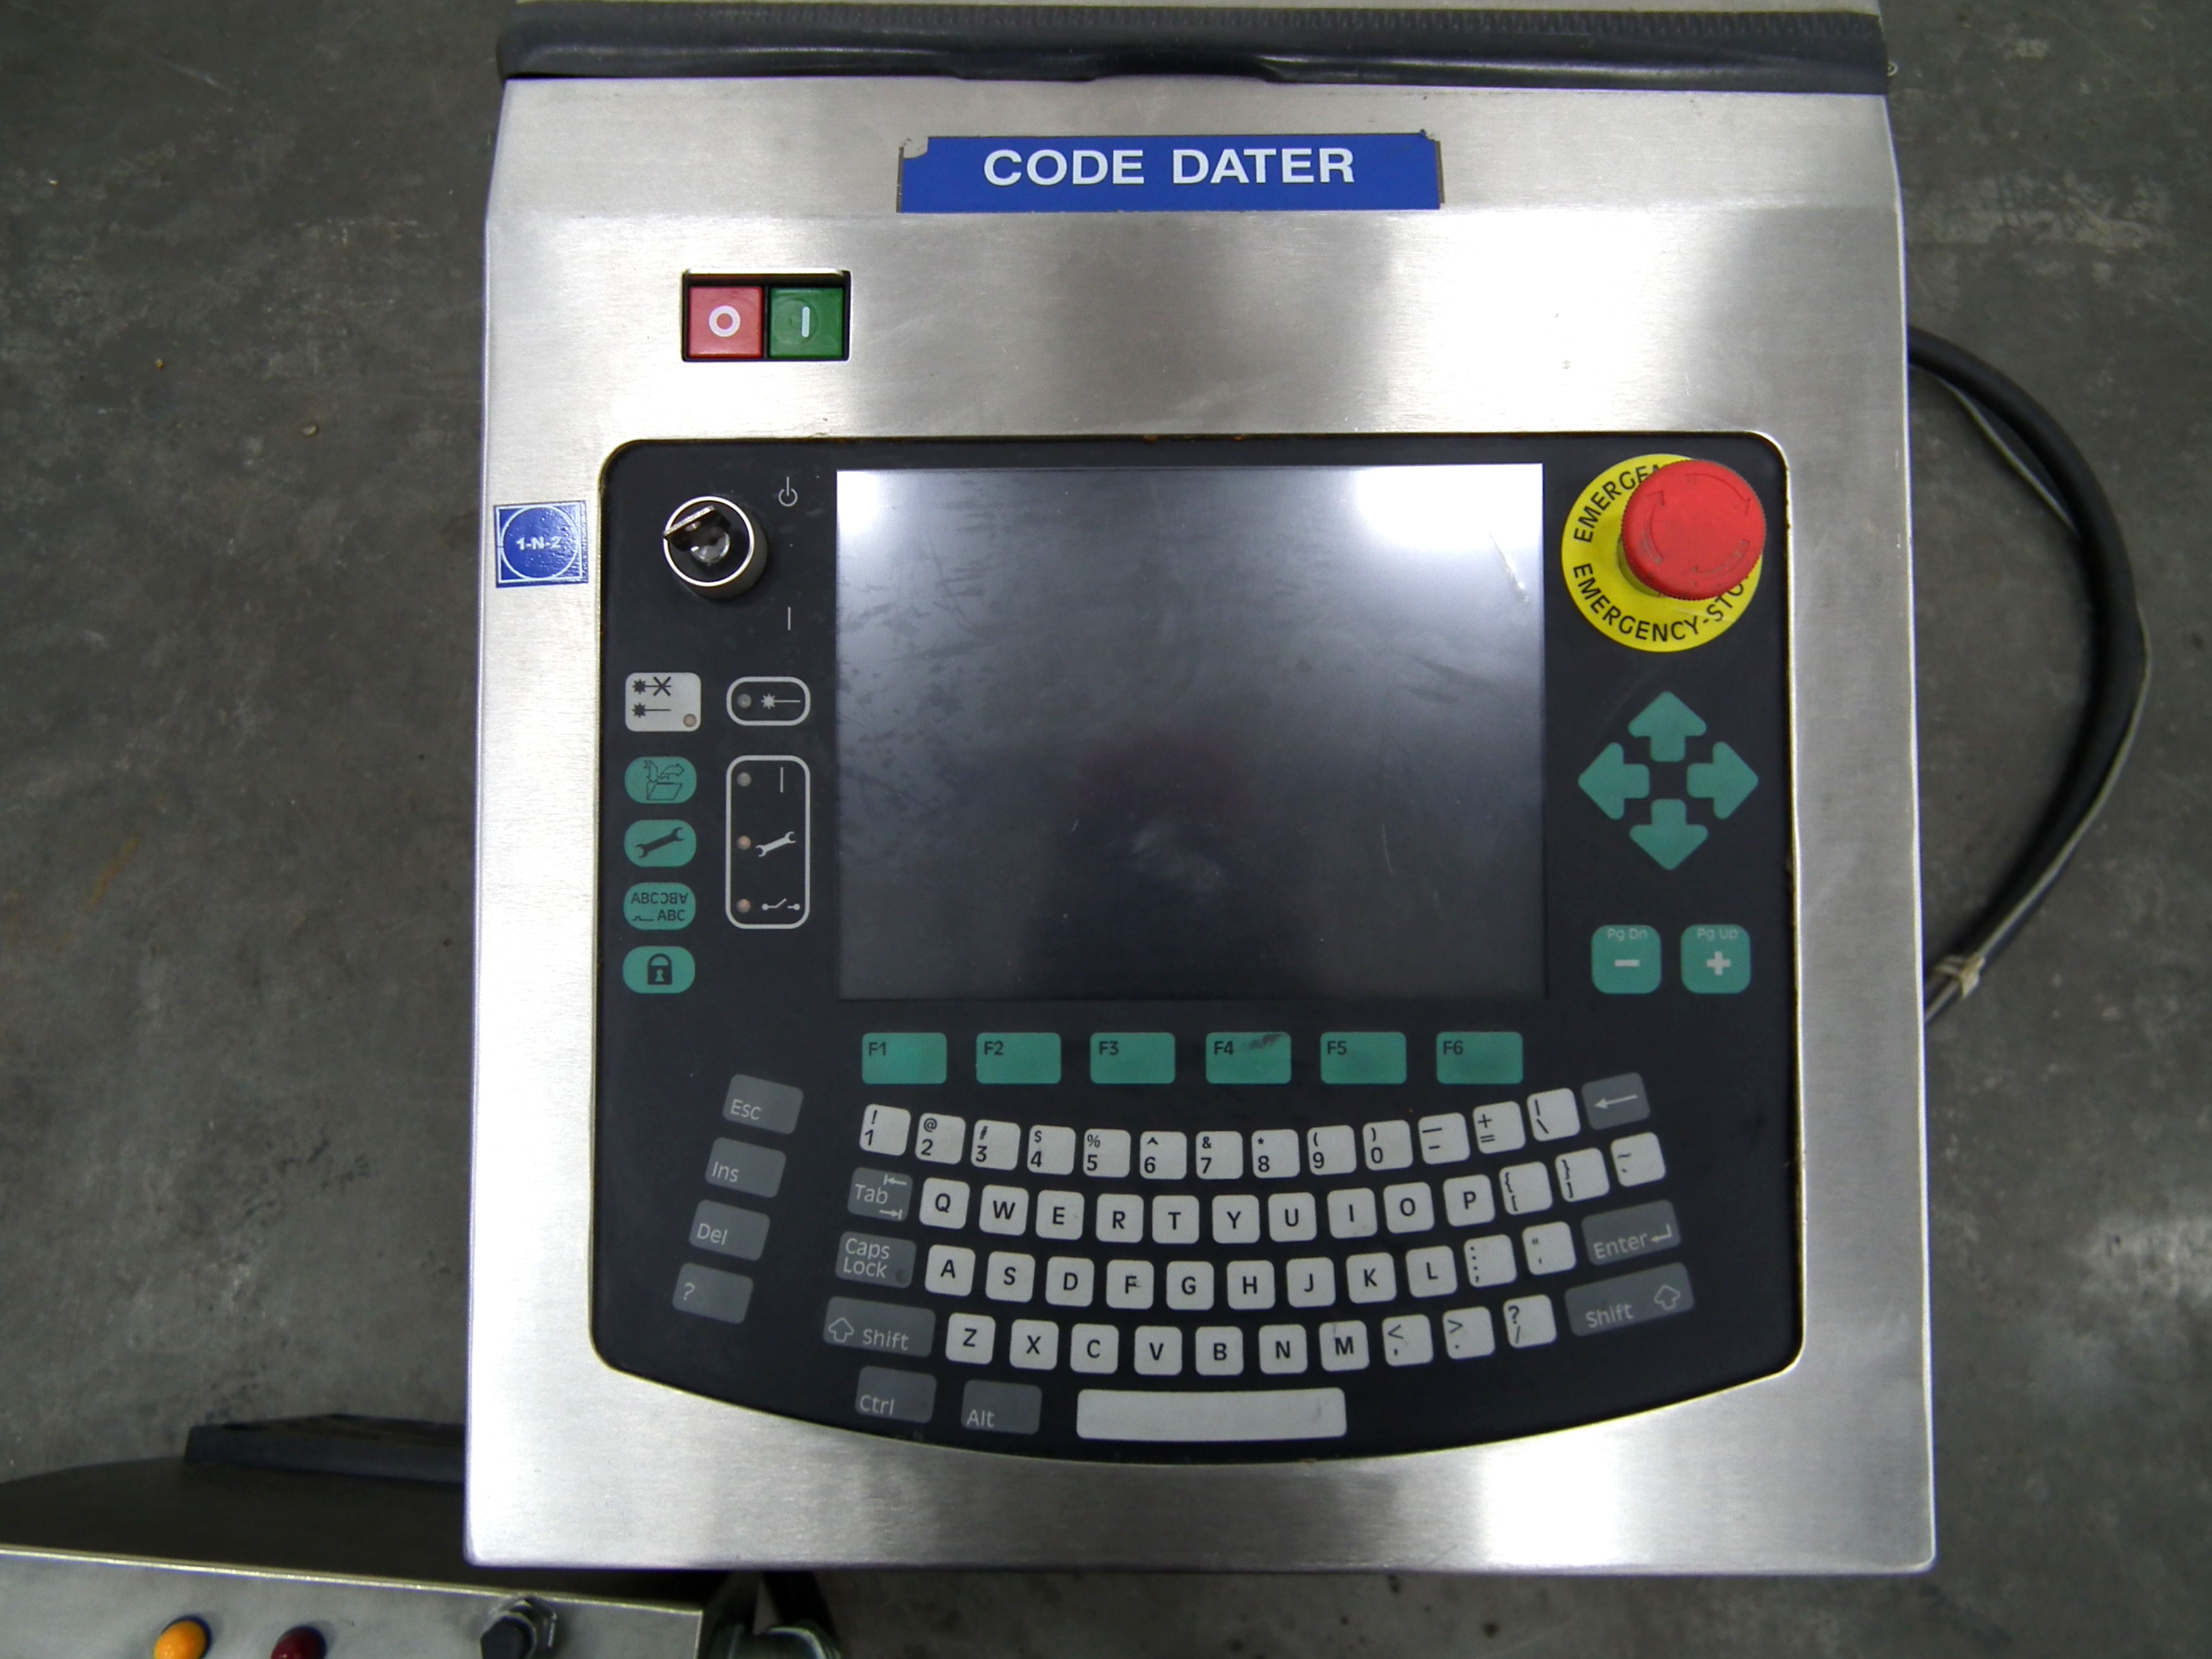 Domino DDC3 Laser Code Dater B4639 - Image 6 of 10